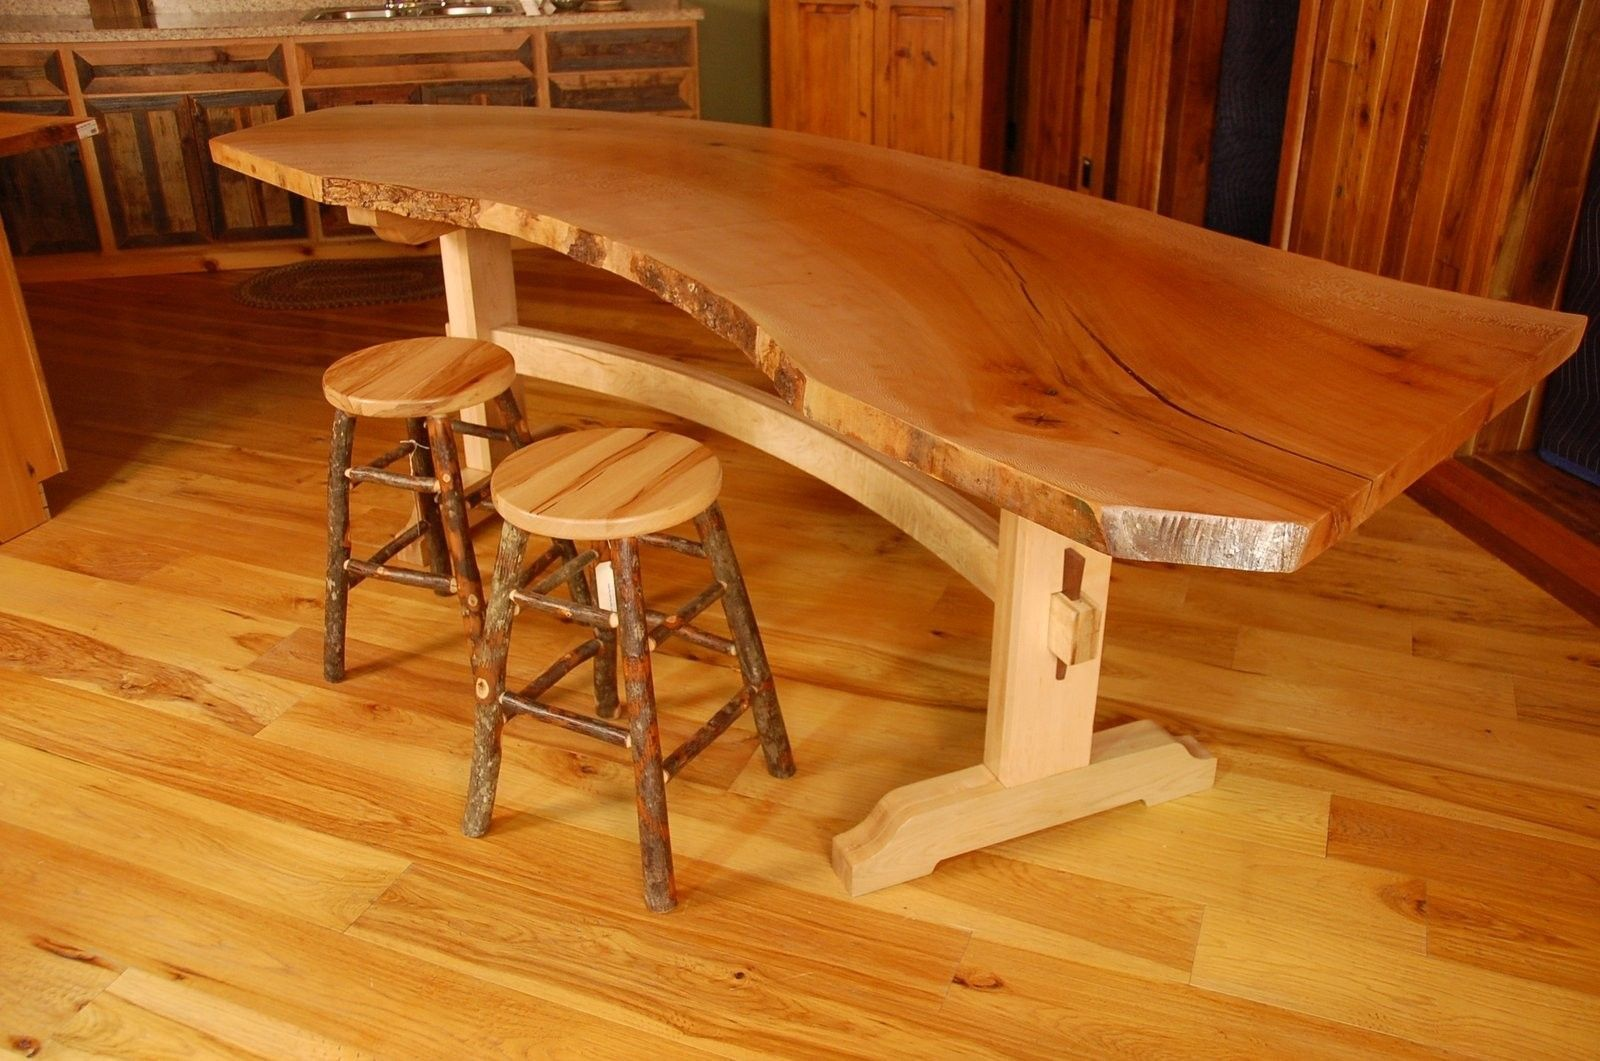 handmade sycamore live edge slab dining table by corey morgan wood works. Black Bedroom Furniture Sets. Home Design Ideas